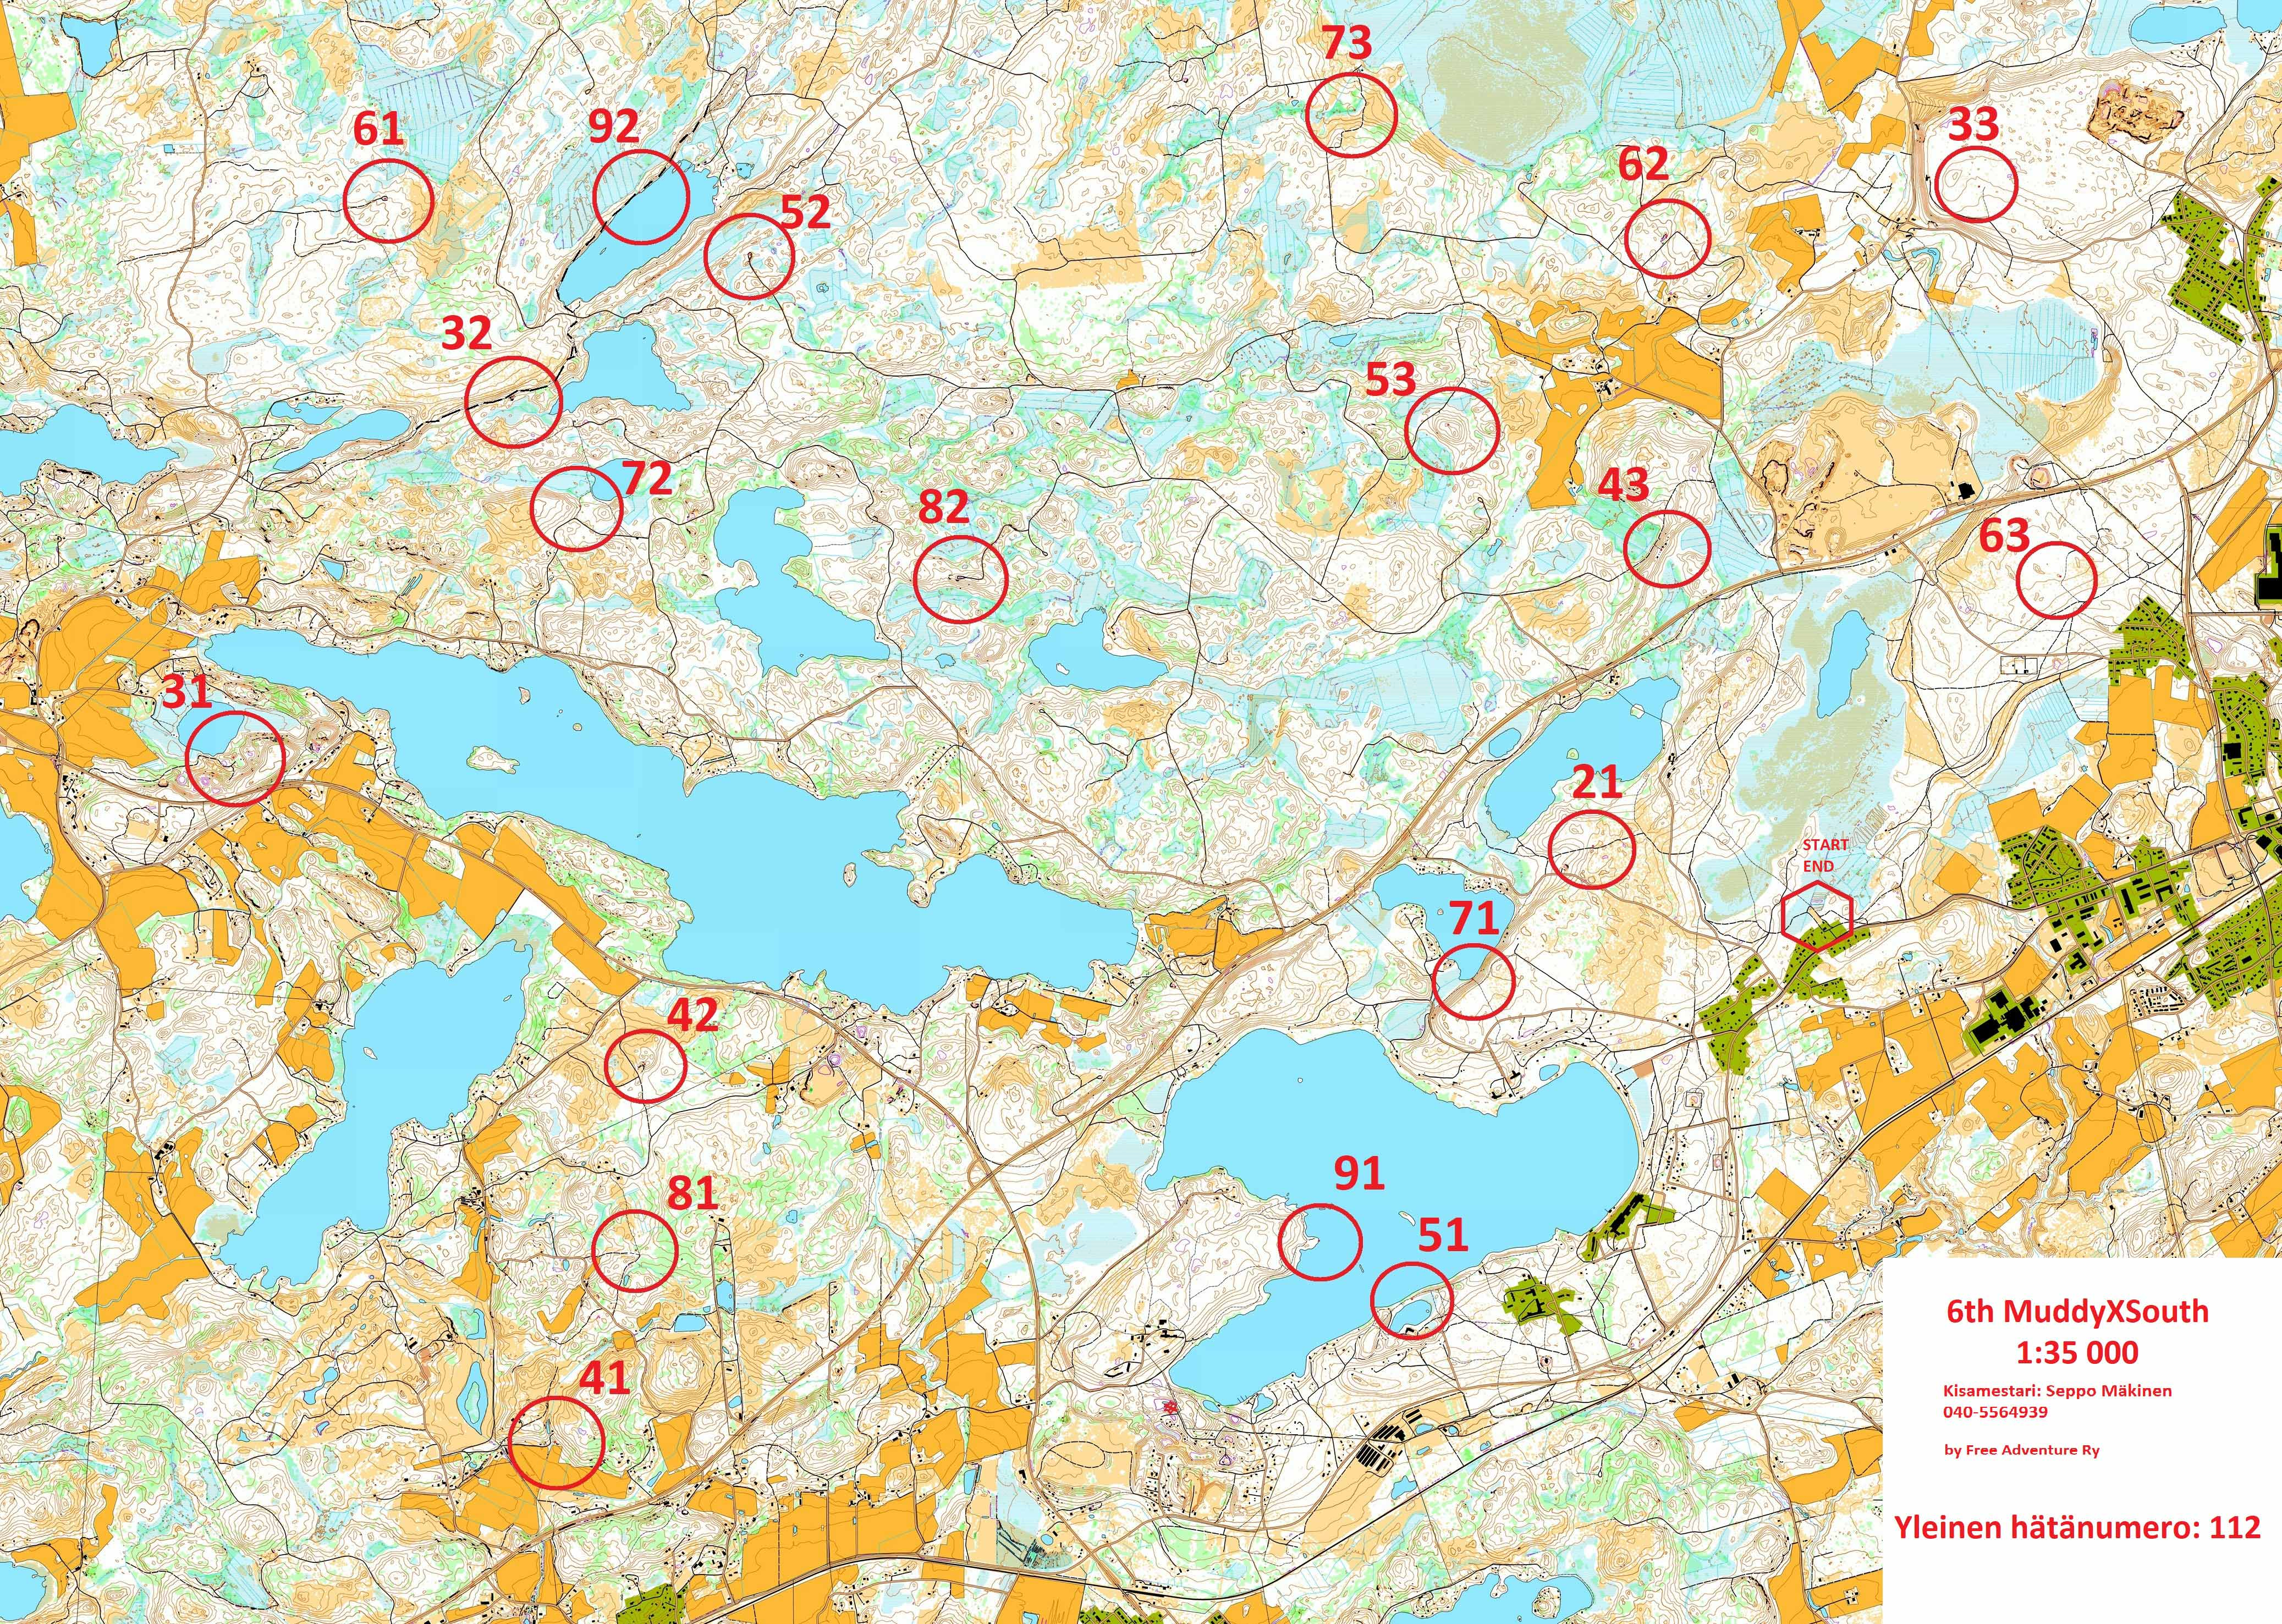 6th muddyx south mtb rogaining october 7th 2017 orienteering request map deleted gumiabroncs Image collections